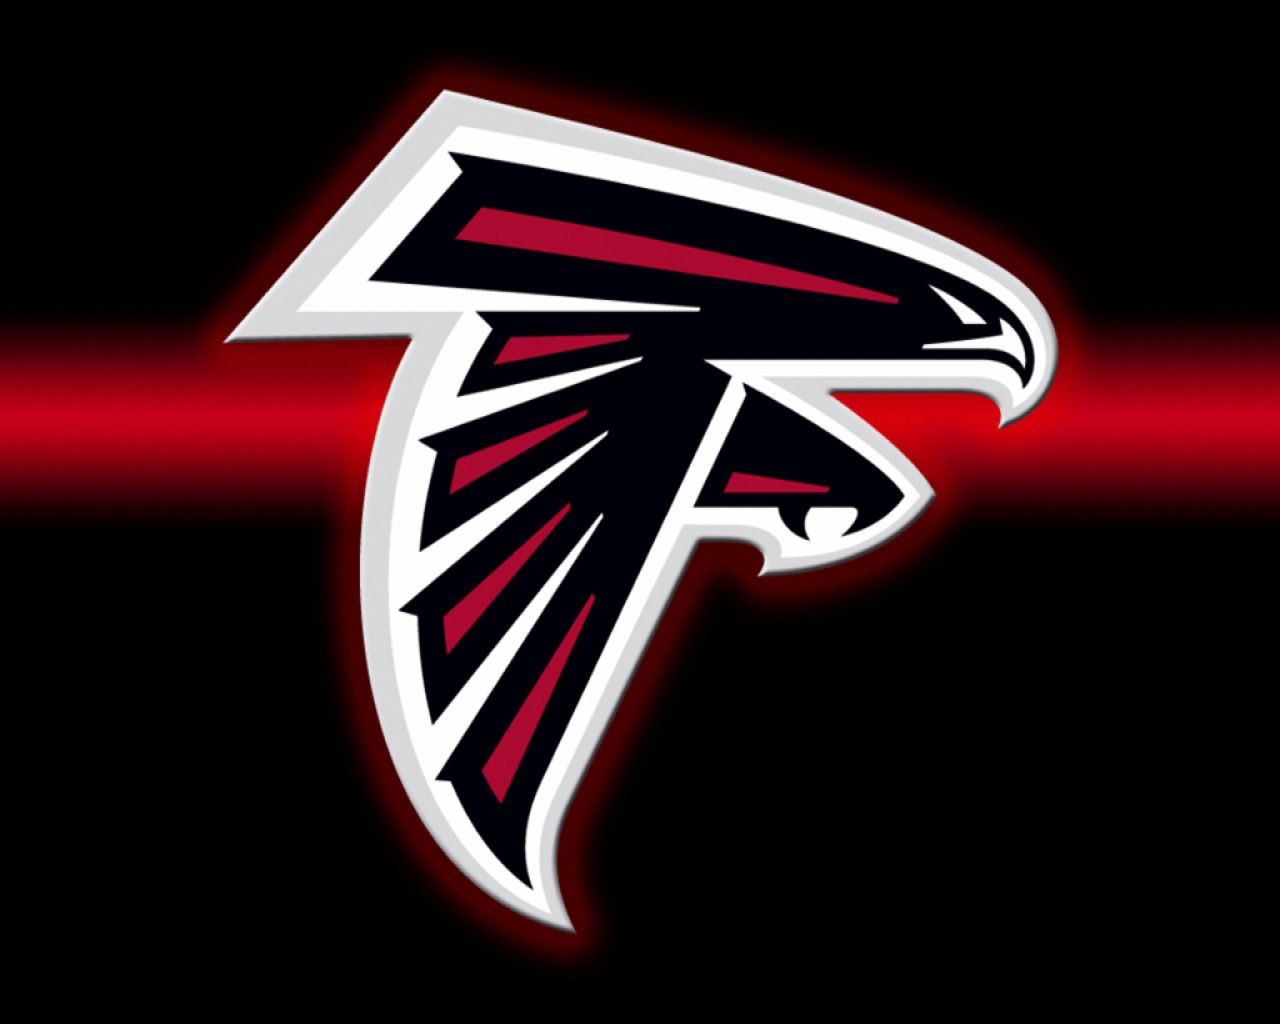 Image Detail For Nfl Team Logos Wallpapers Nfc Teams 1280 X 1024 Pixels Atlanta Atlanta Falcons Logo Atlanta Falcons Vinyl Atlanta Falcons Football